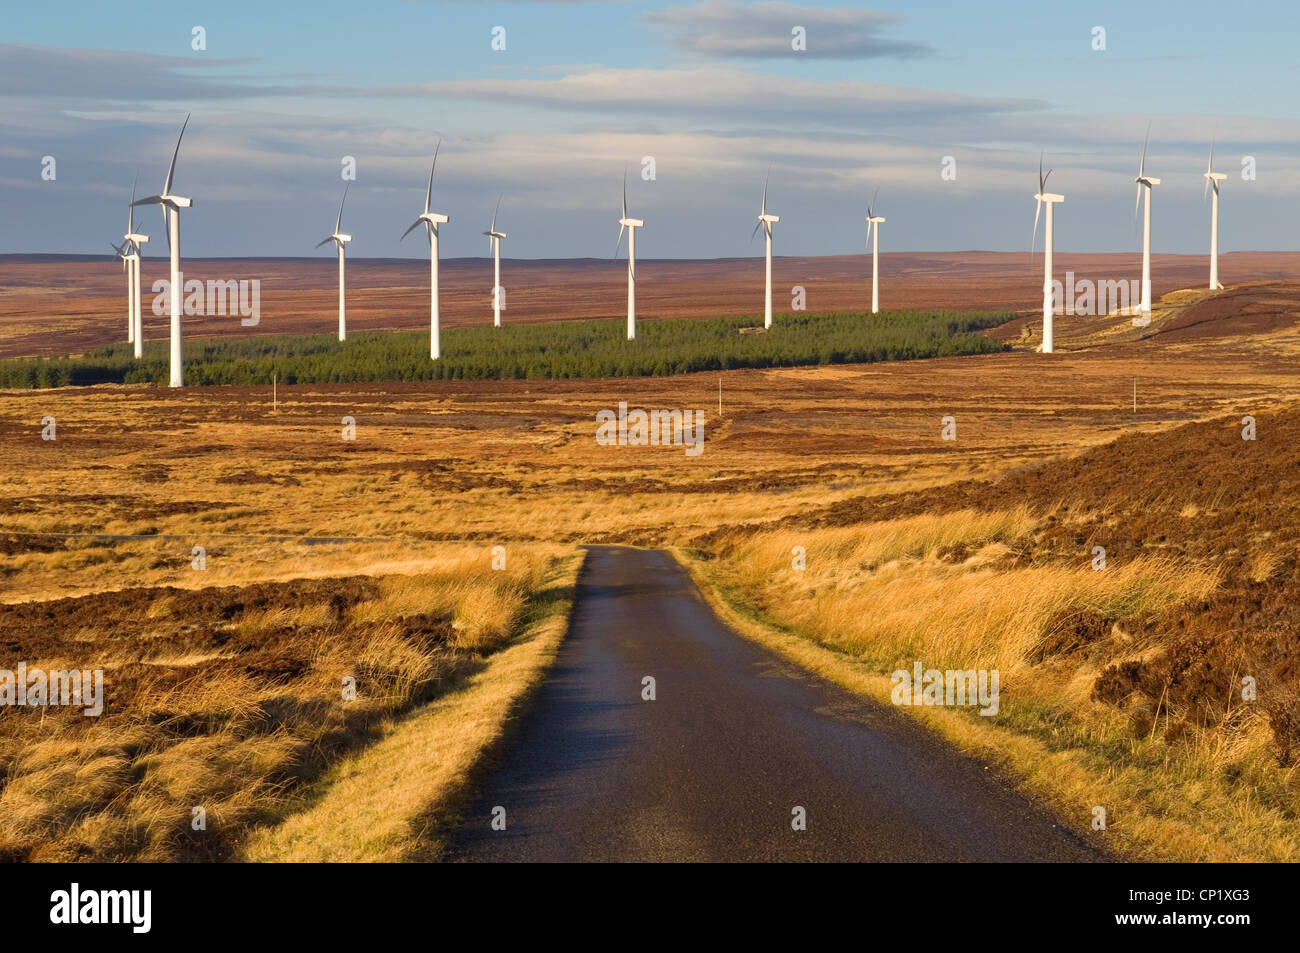 Windfarm at Houstry, Caithness, Scotland. - Stock Image